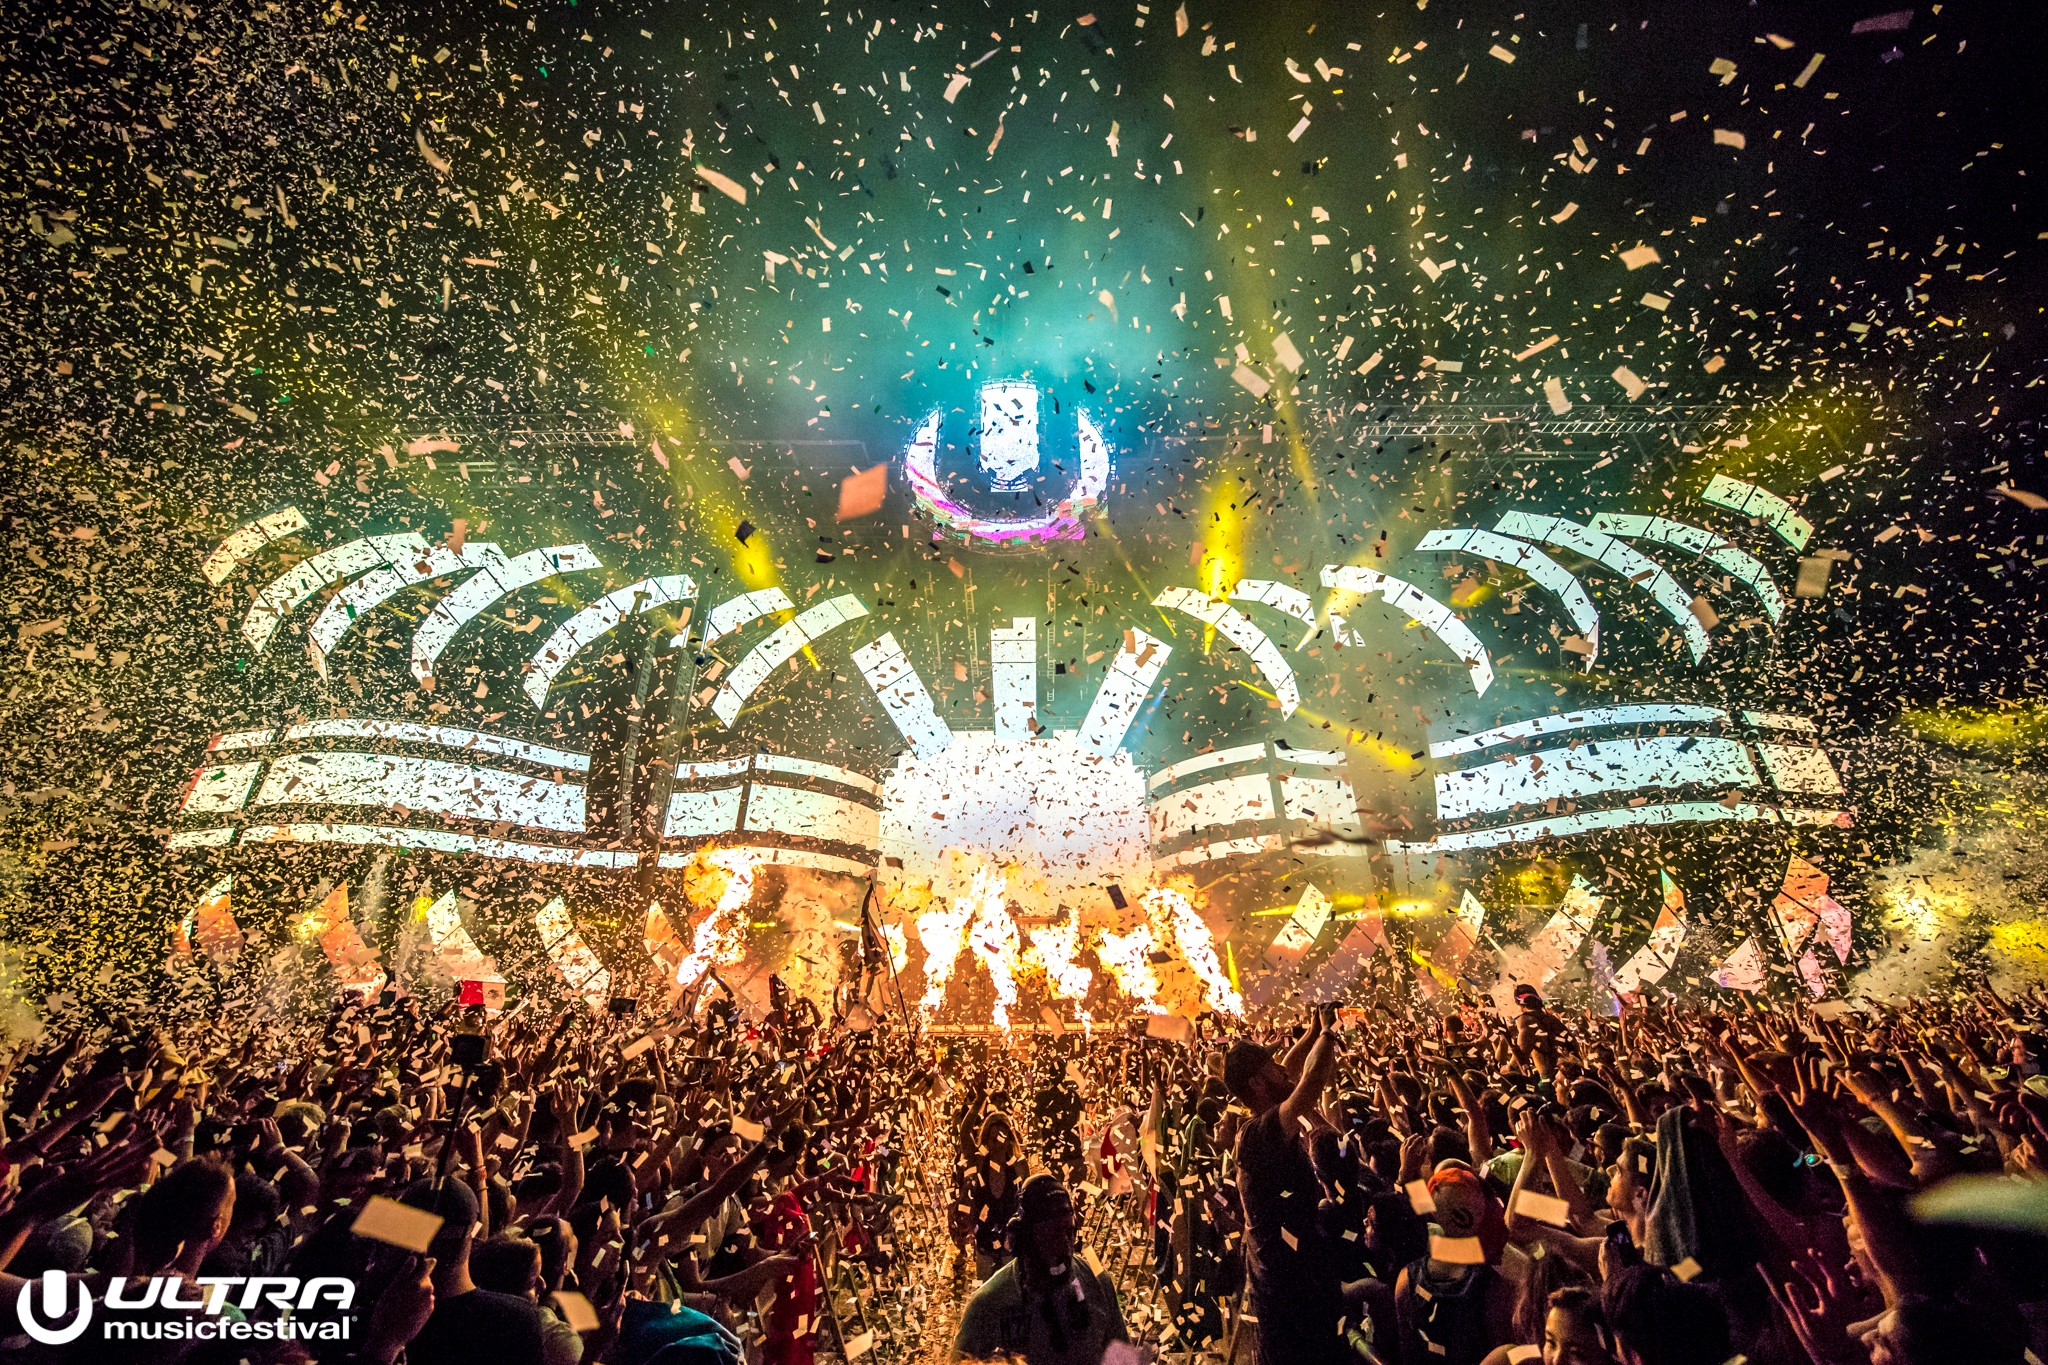 Ultra-music-festival_2017_aLIVE Coverage - Main Stage